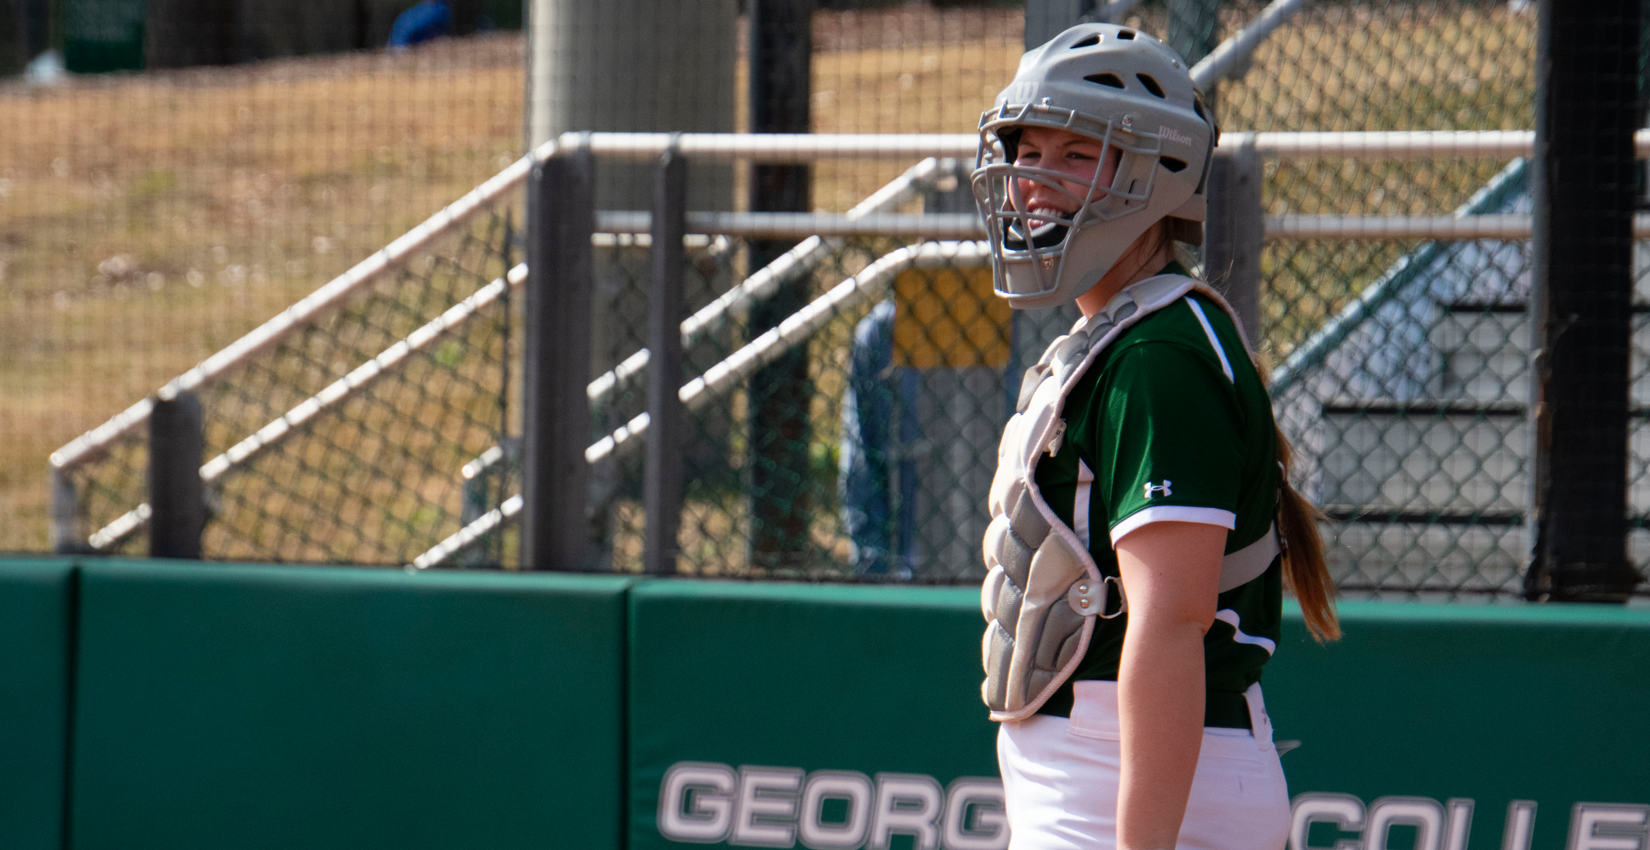 Late Heroics Help Bobcat Softball Sweep Tight Contests with NGU, 5-4 and 2-1